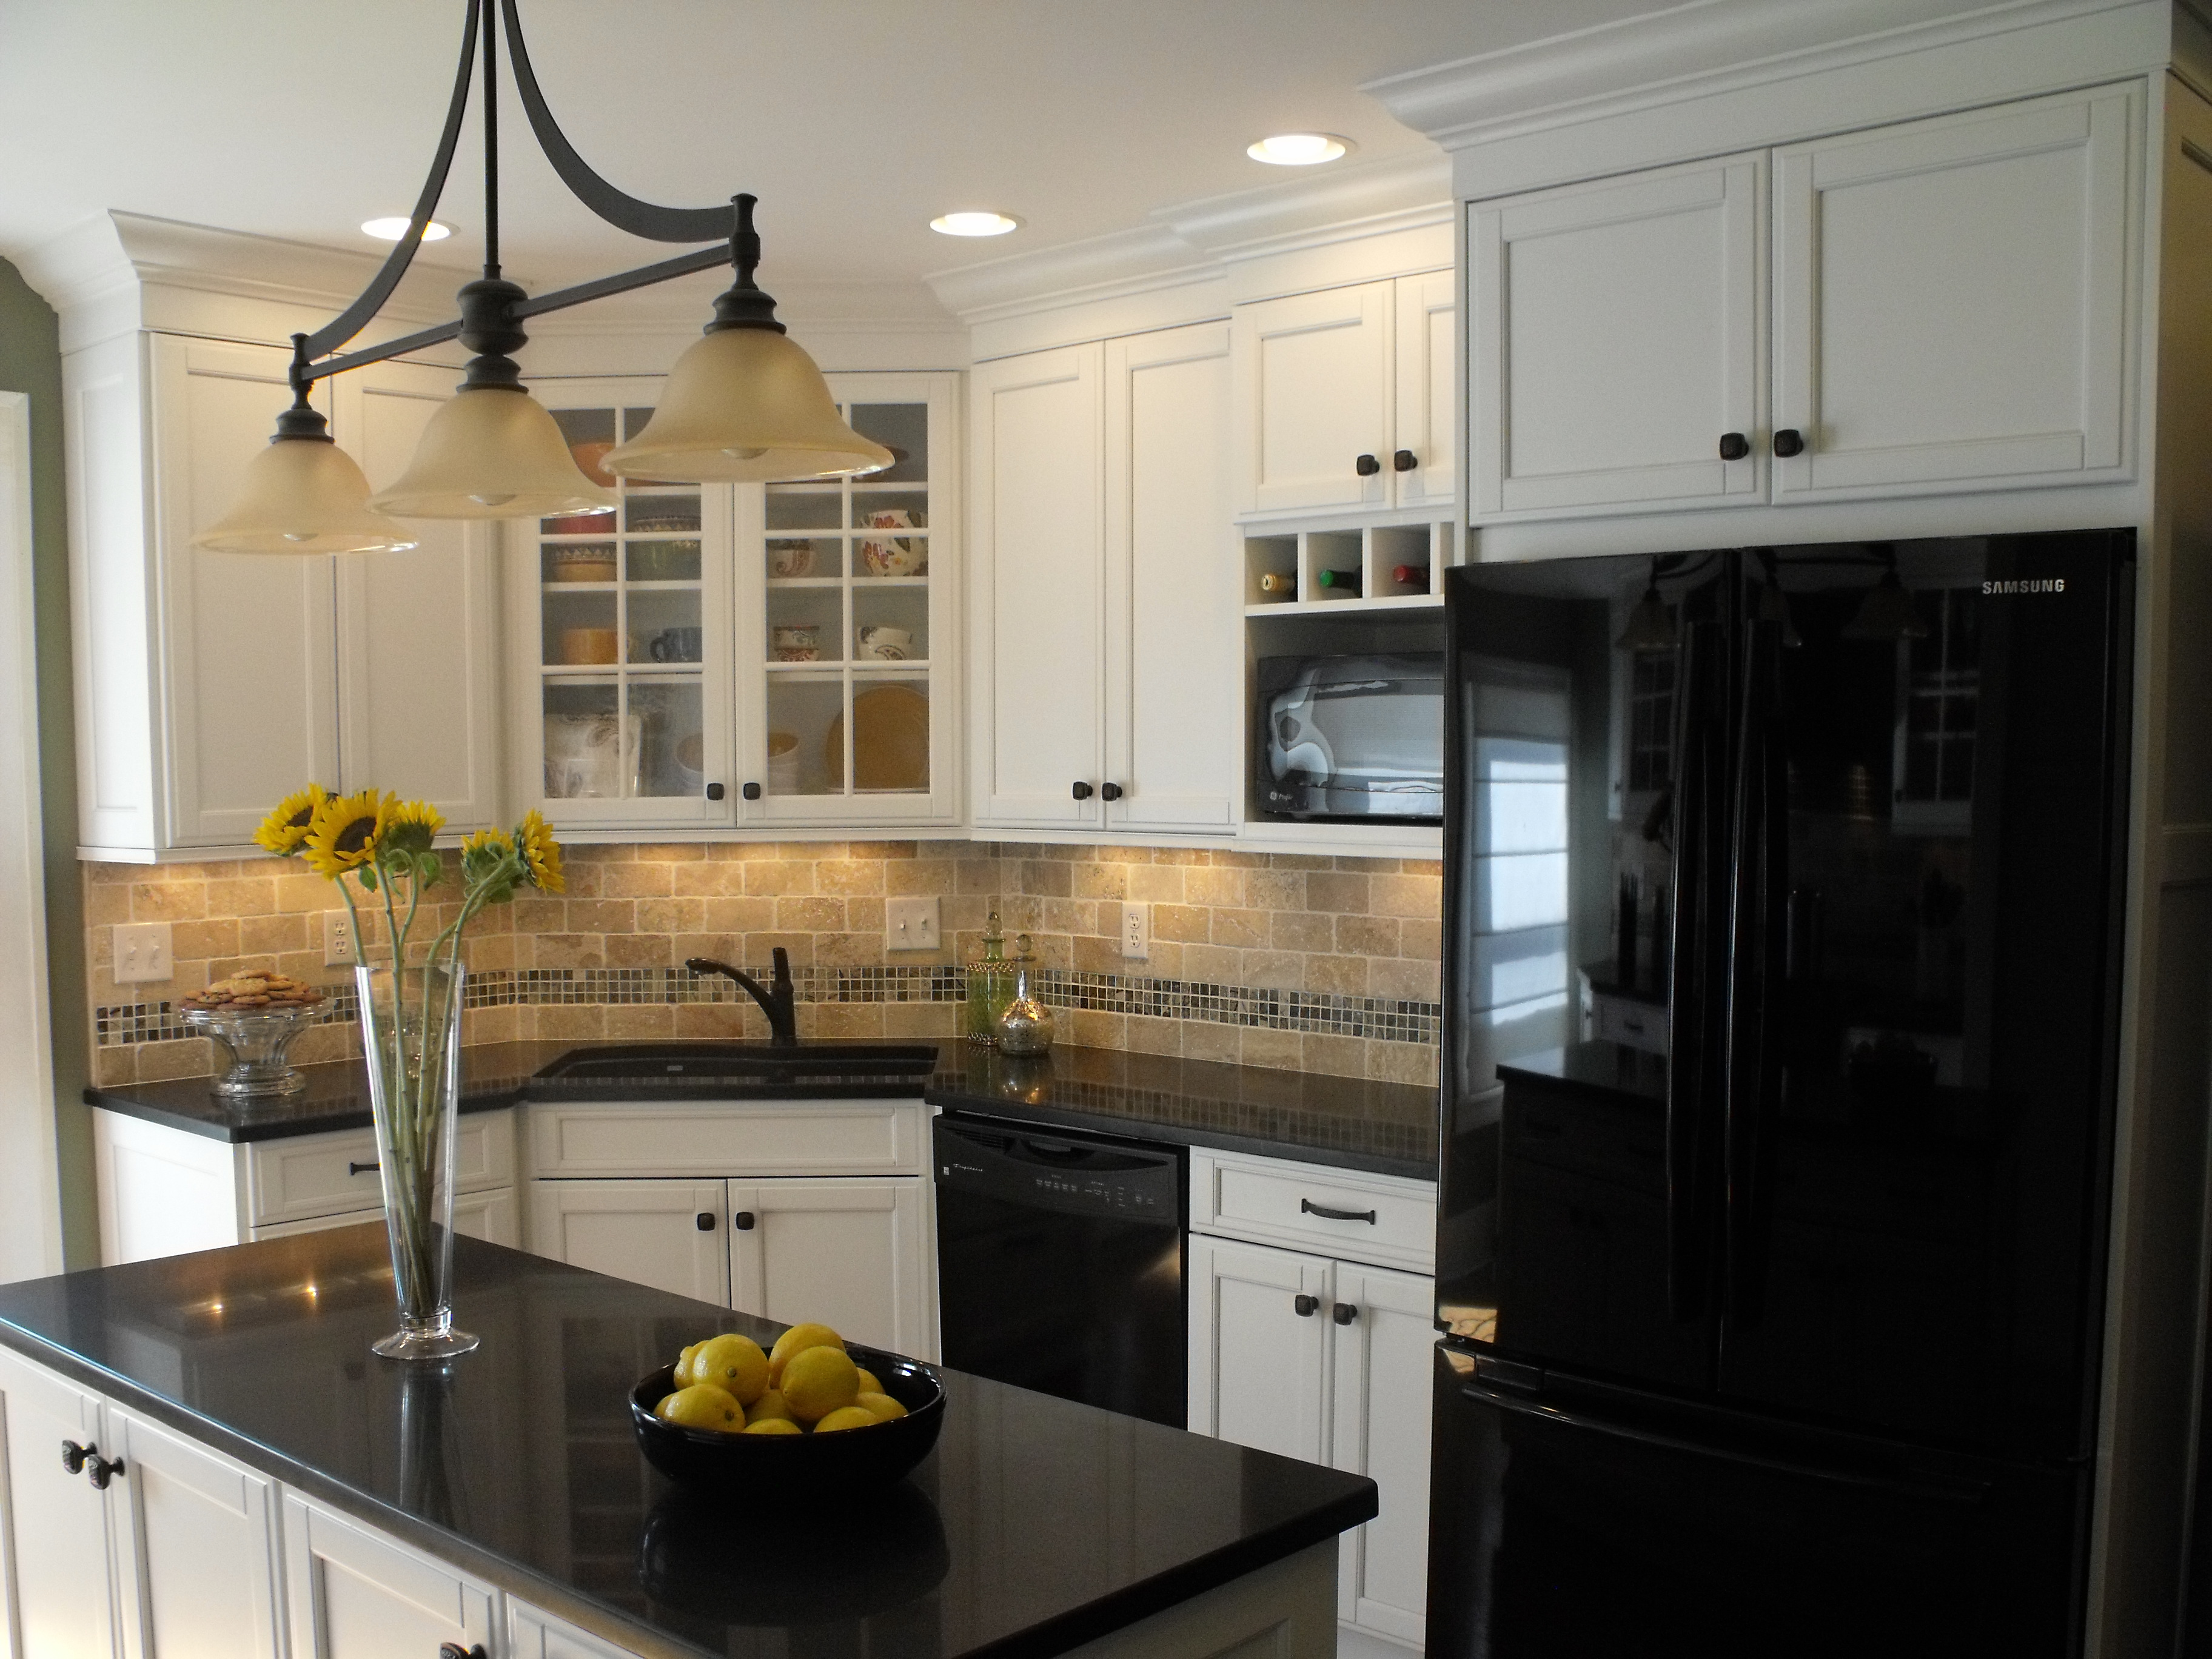 lajohnsonkitchens kitchen remodel estimator kitchen remodel La Johnson